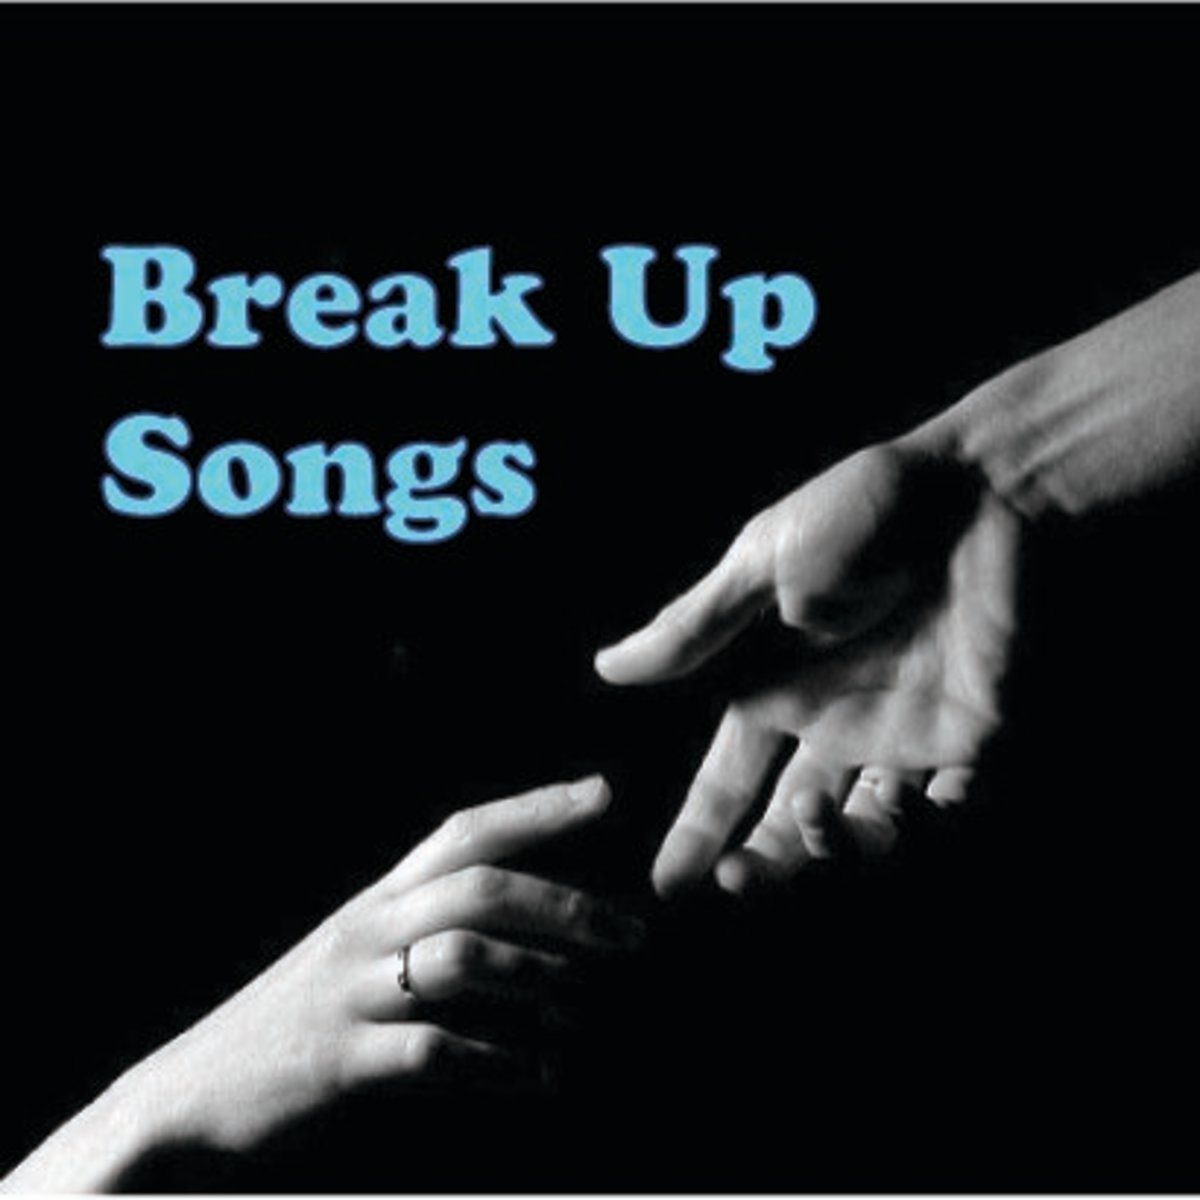 My Ten Favorite Break-up Songs of All Time